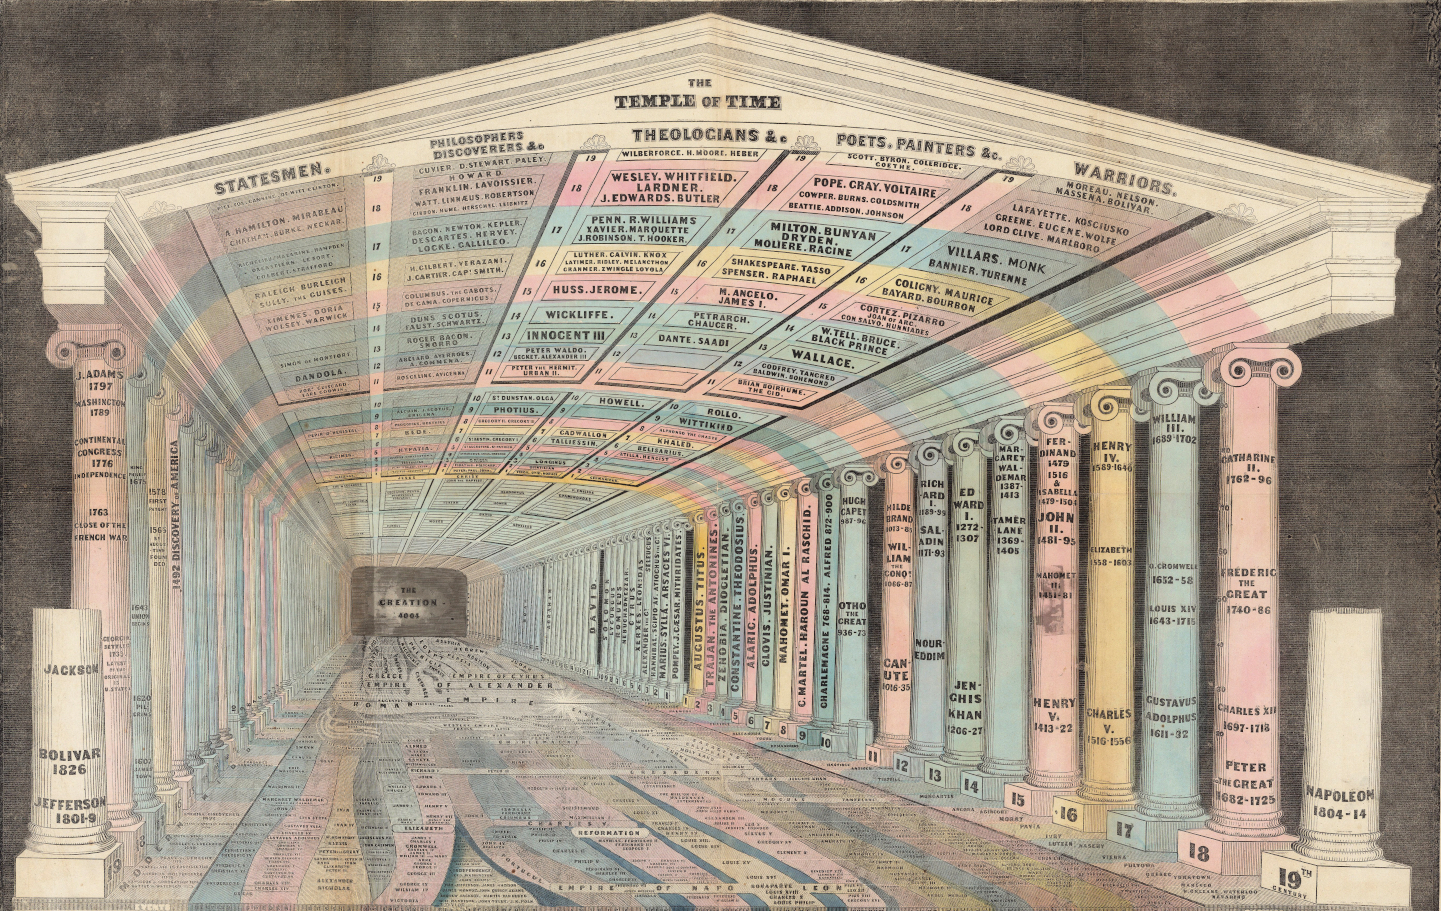 Emma Willard's Maps of Time